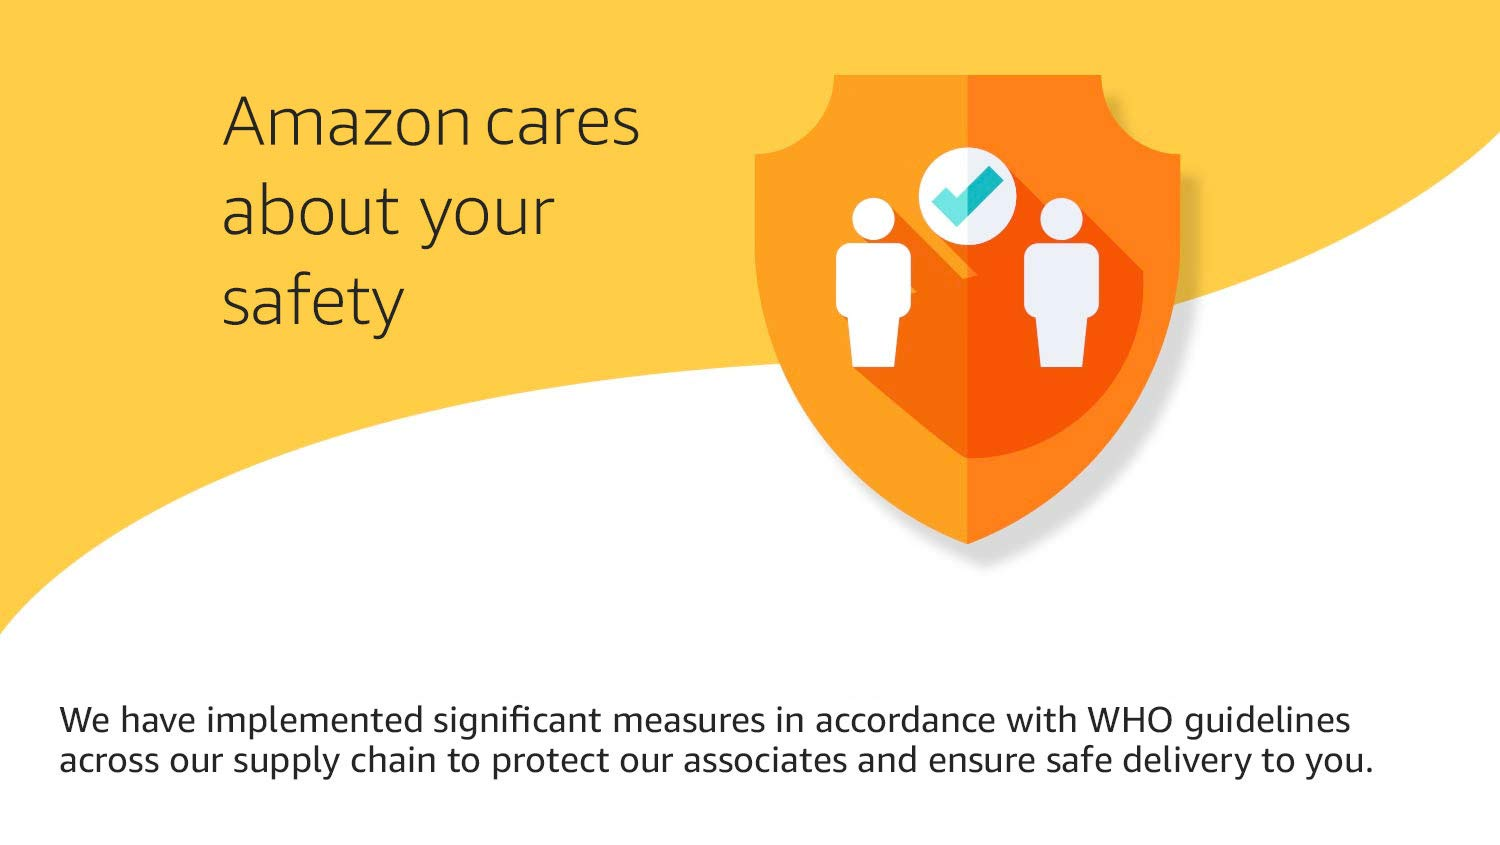 Amazon cares about your safety